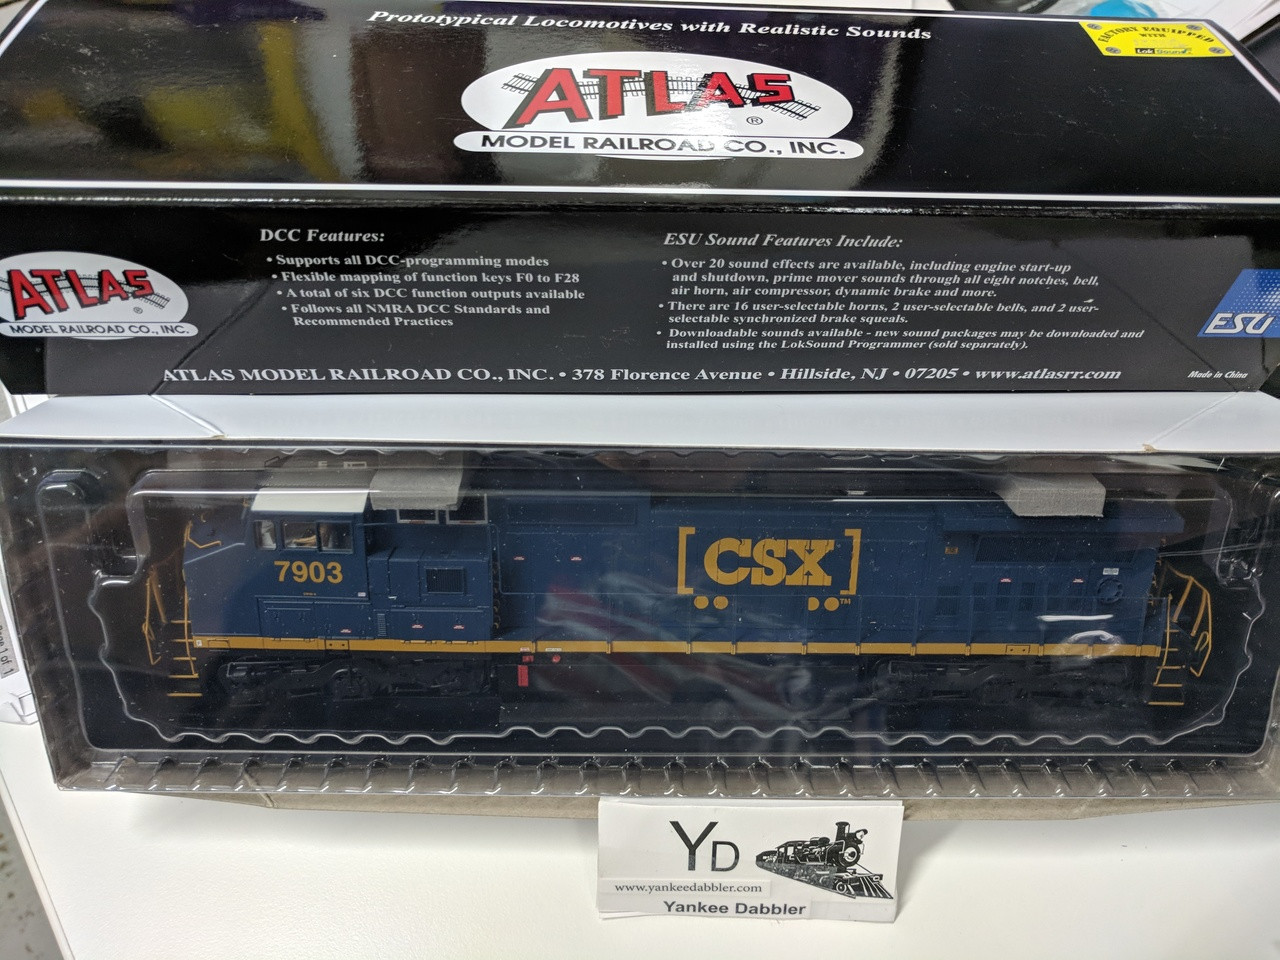 "ATLAS 10002313 / Atlas Model Railroad Co. GE Dash 8-40CW #7903 (CSX ""YN3b) w/LokSound & DCC - Master(R) Gold (SCALE=HO Part # 150-10002313"